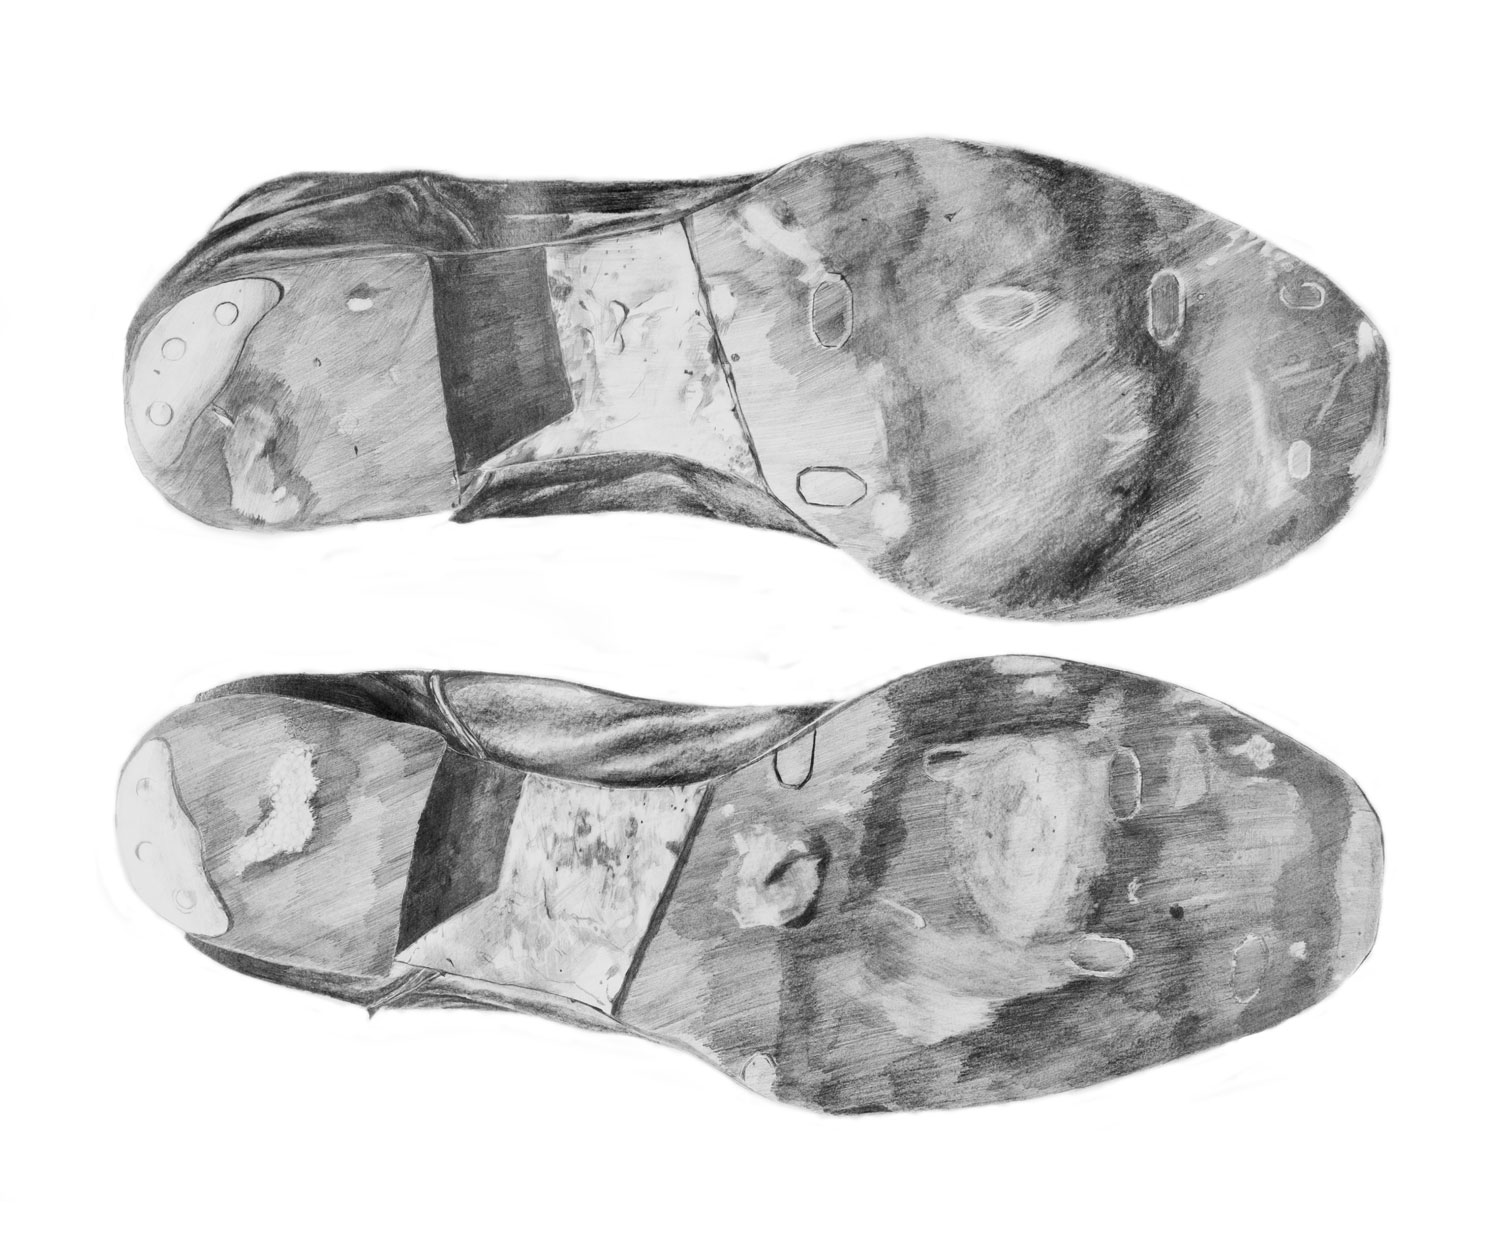 Shoes   Materials:  Graphite on paper   Date of Creation:  2010